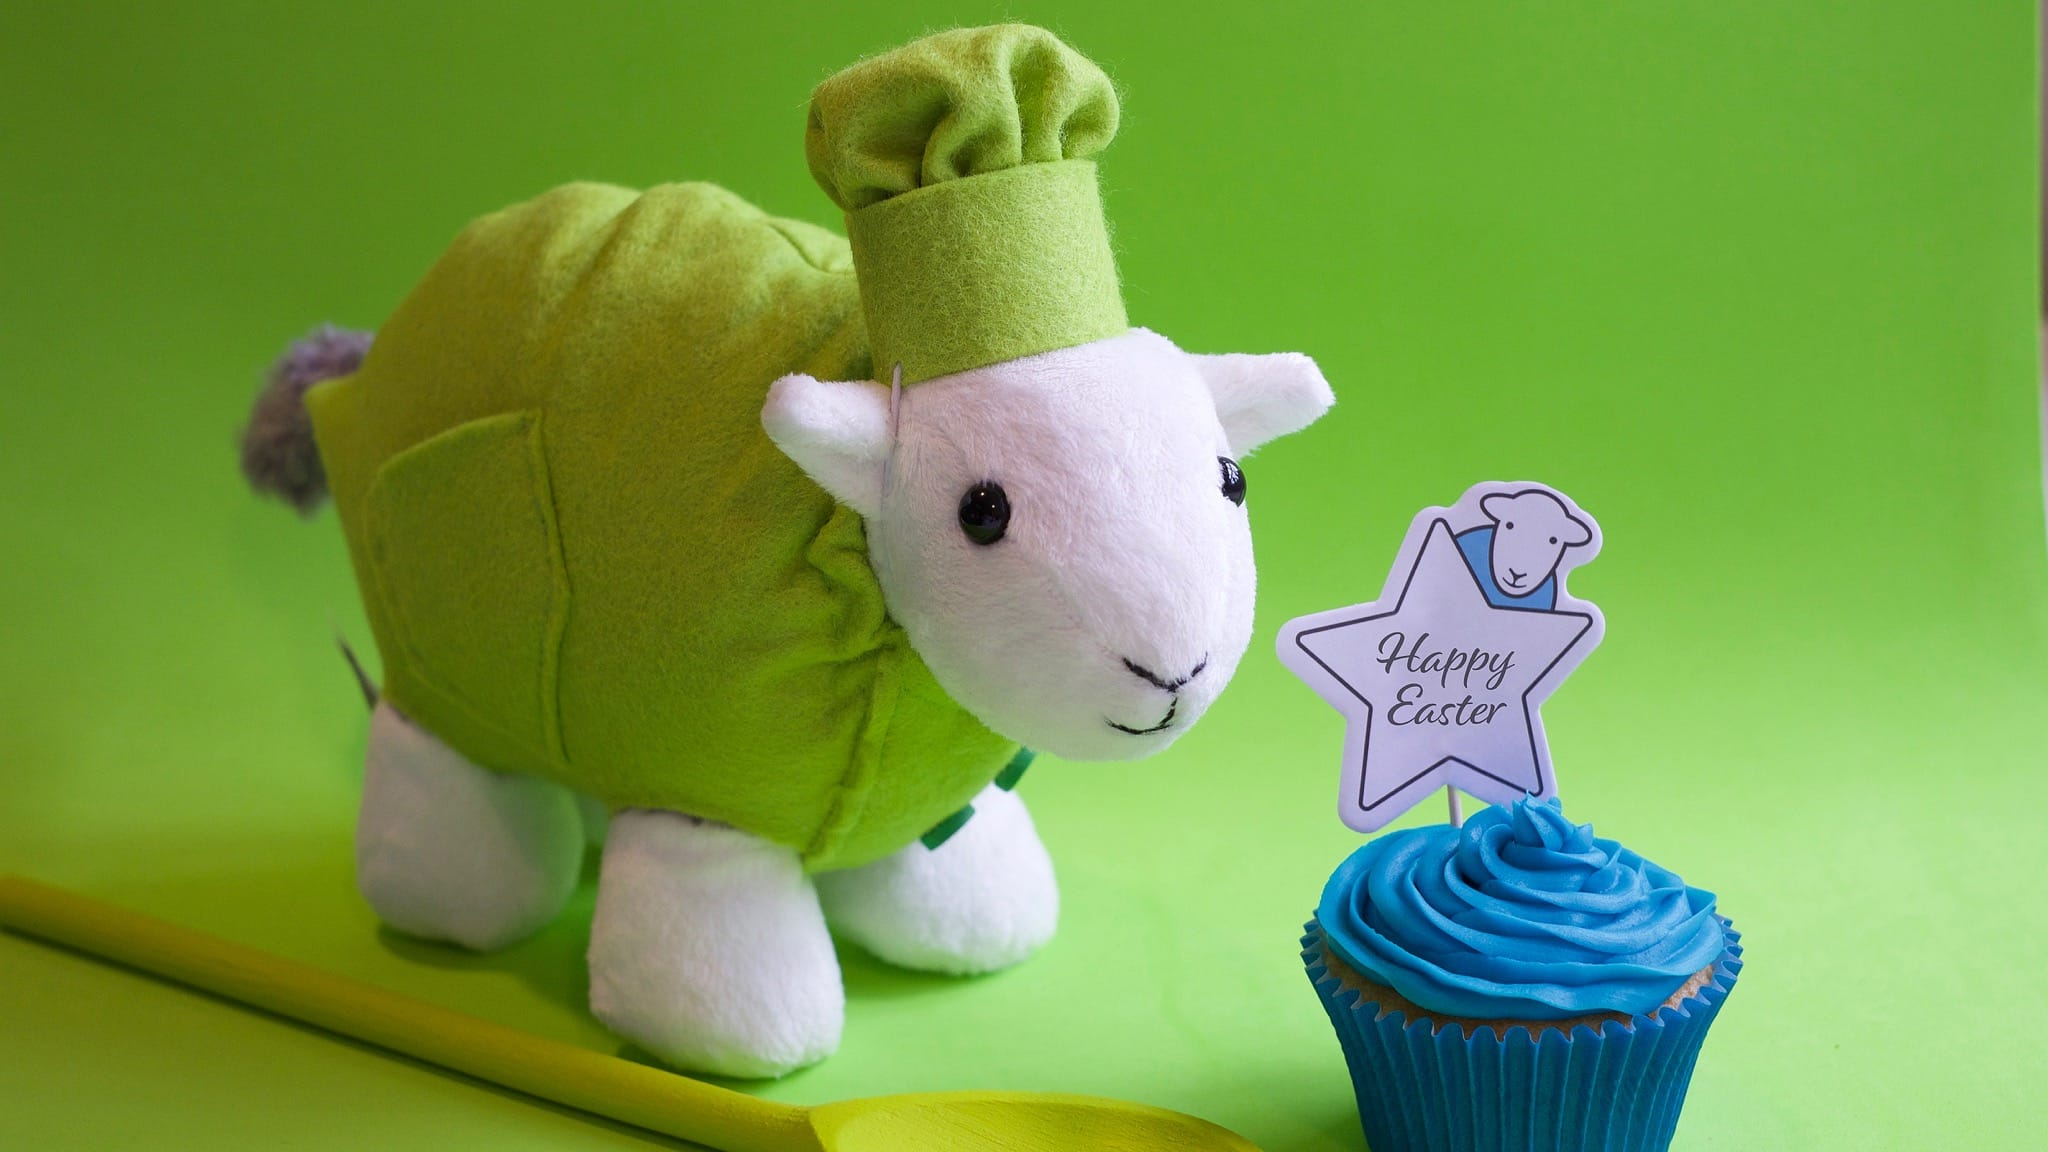 How to make Herdy-themed Easter cupcakes